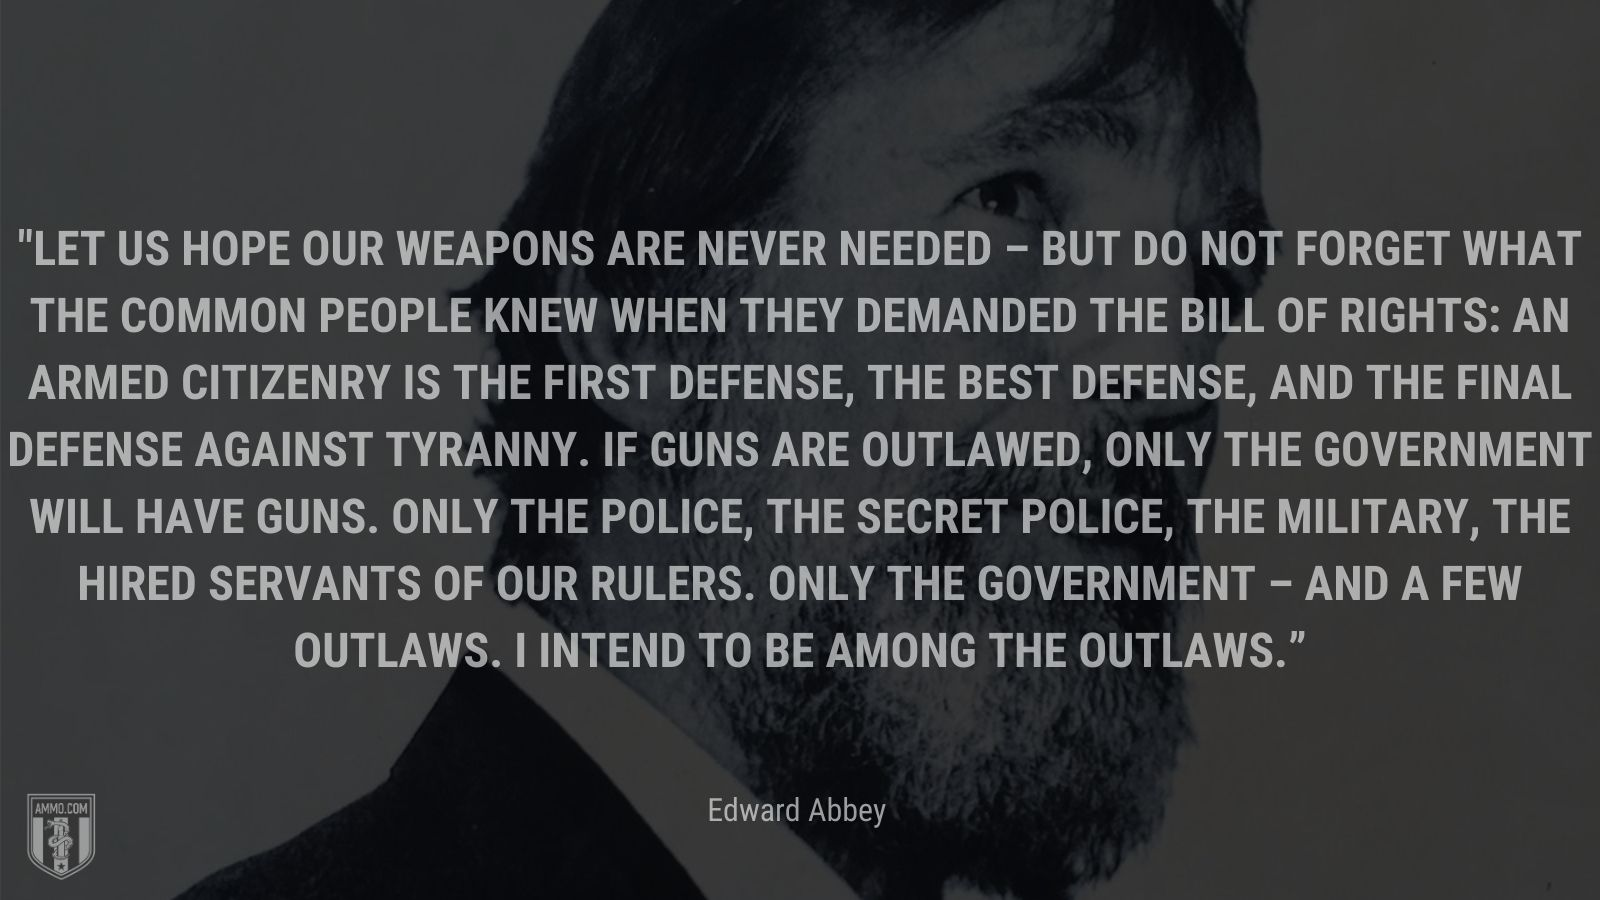 """""""Let us hope our weapons are never needed – but do not forget what the common people knew when they demanded the Bill of Rights: An armed citizenry is the first defense, the best defense, and the final defense against tyranny. If guns are outlawed, only the government will have guns. Only the police, the secret police, the military, the hired servants of our rulers. Only the government – and a few outlaws. I intend to be among the outlaws."""" - Edward Abbey"""